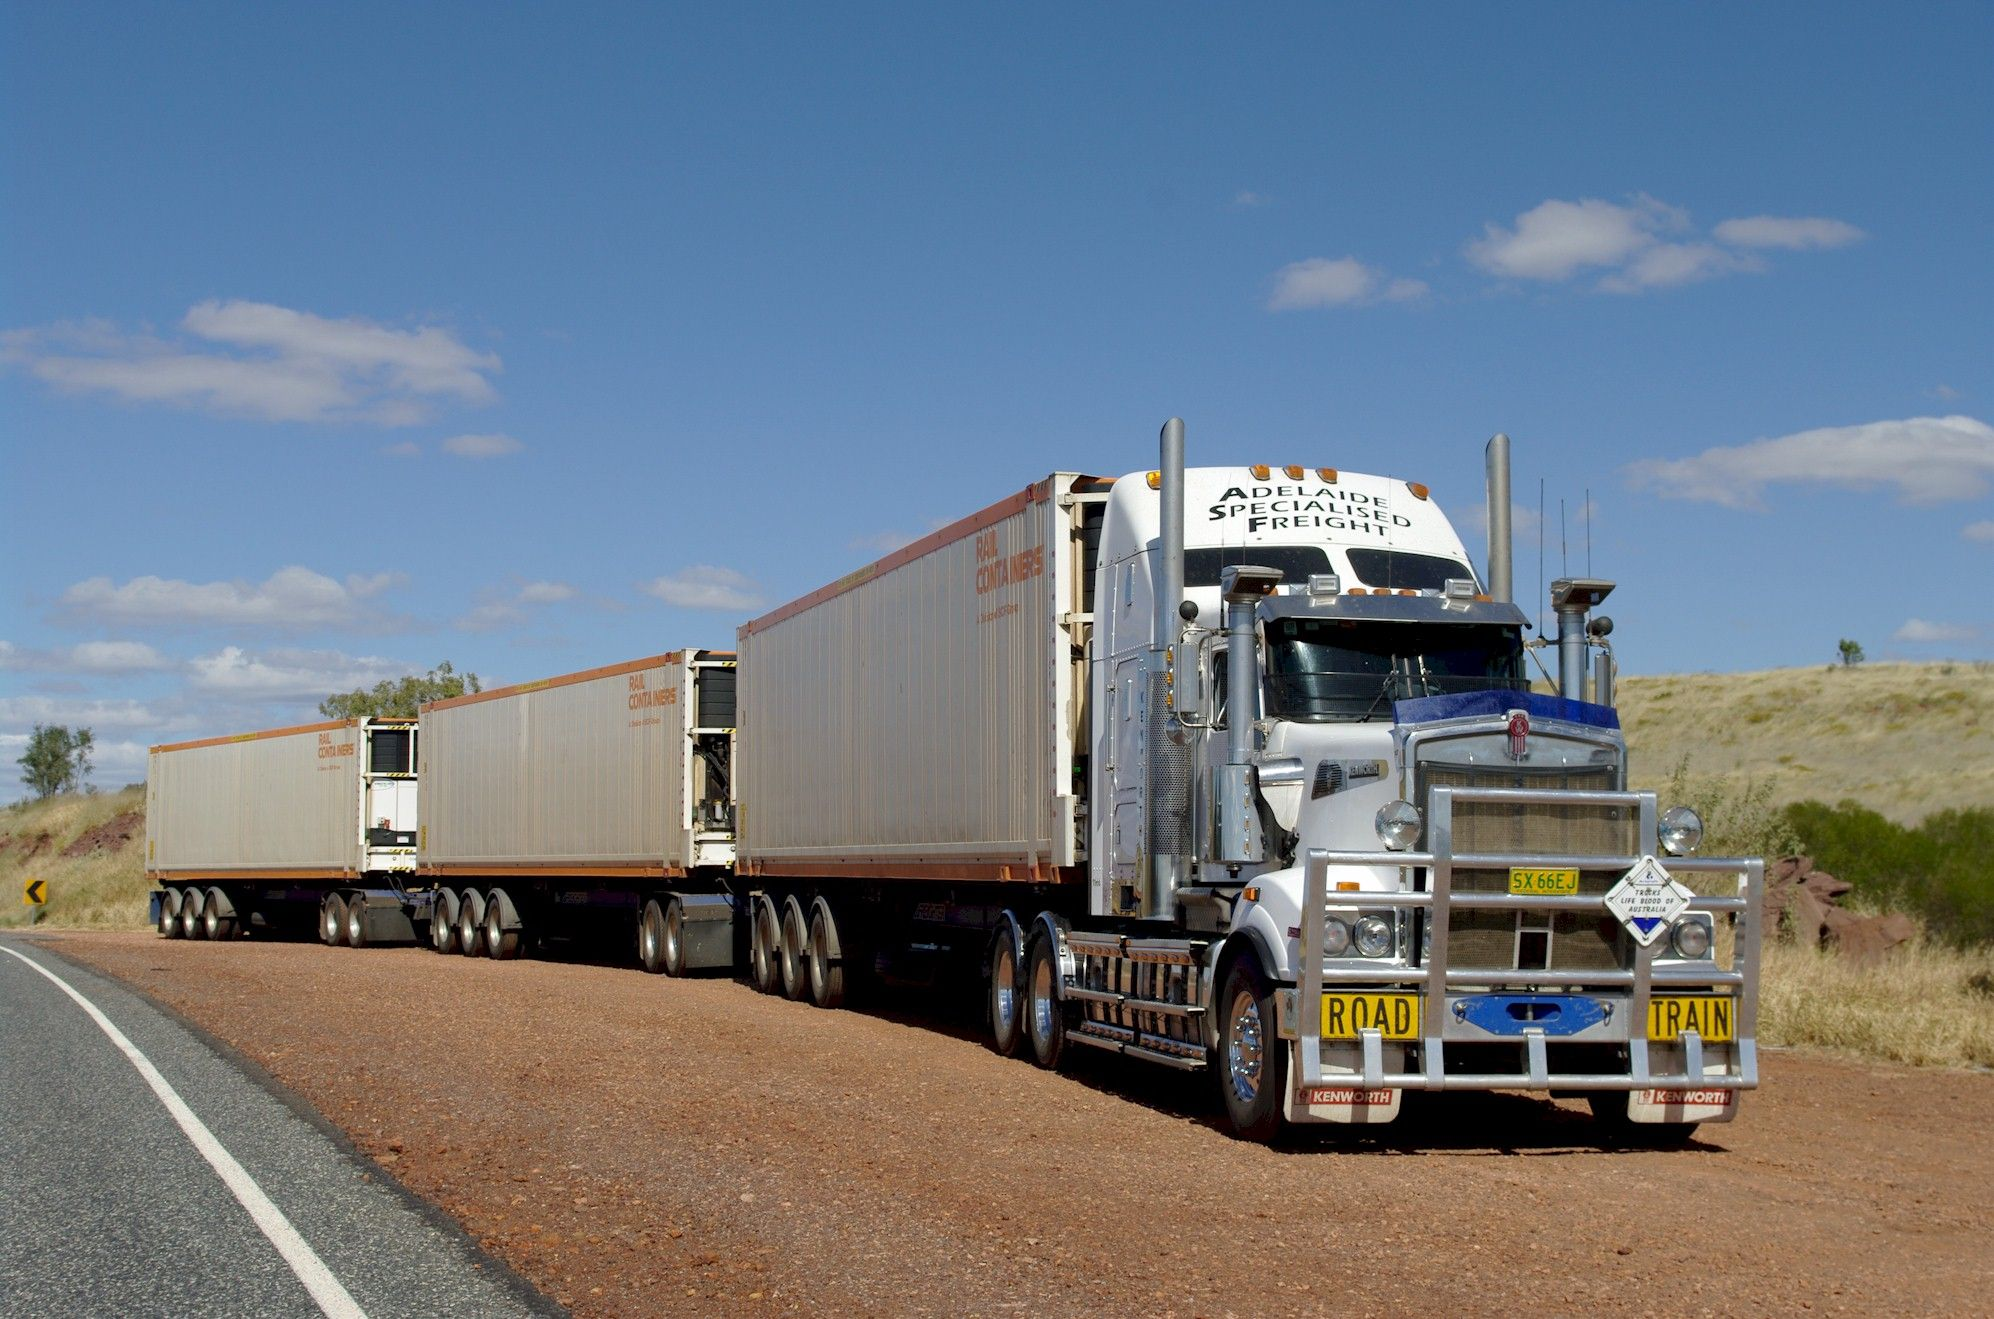 Pin by Ciprian Bismark on Trucks Australian | Trucks, Road ...